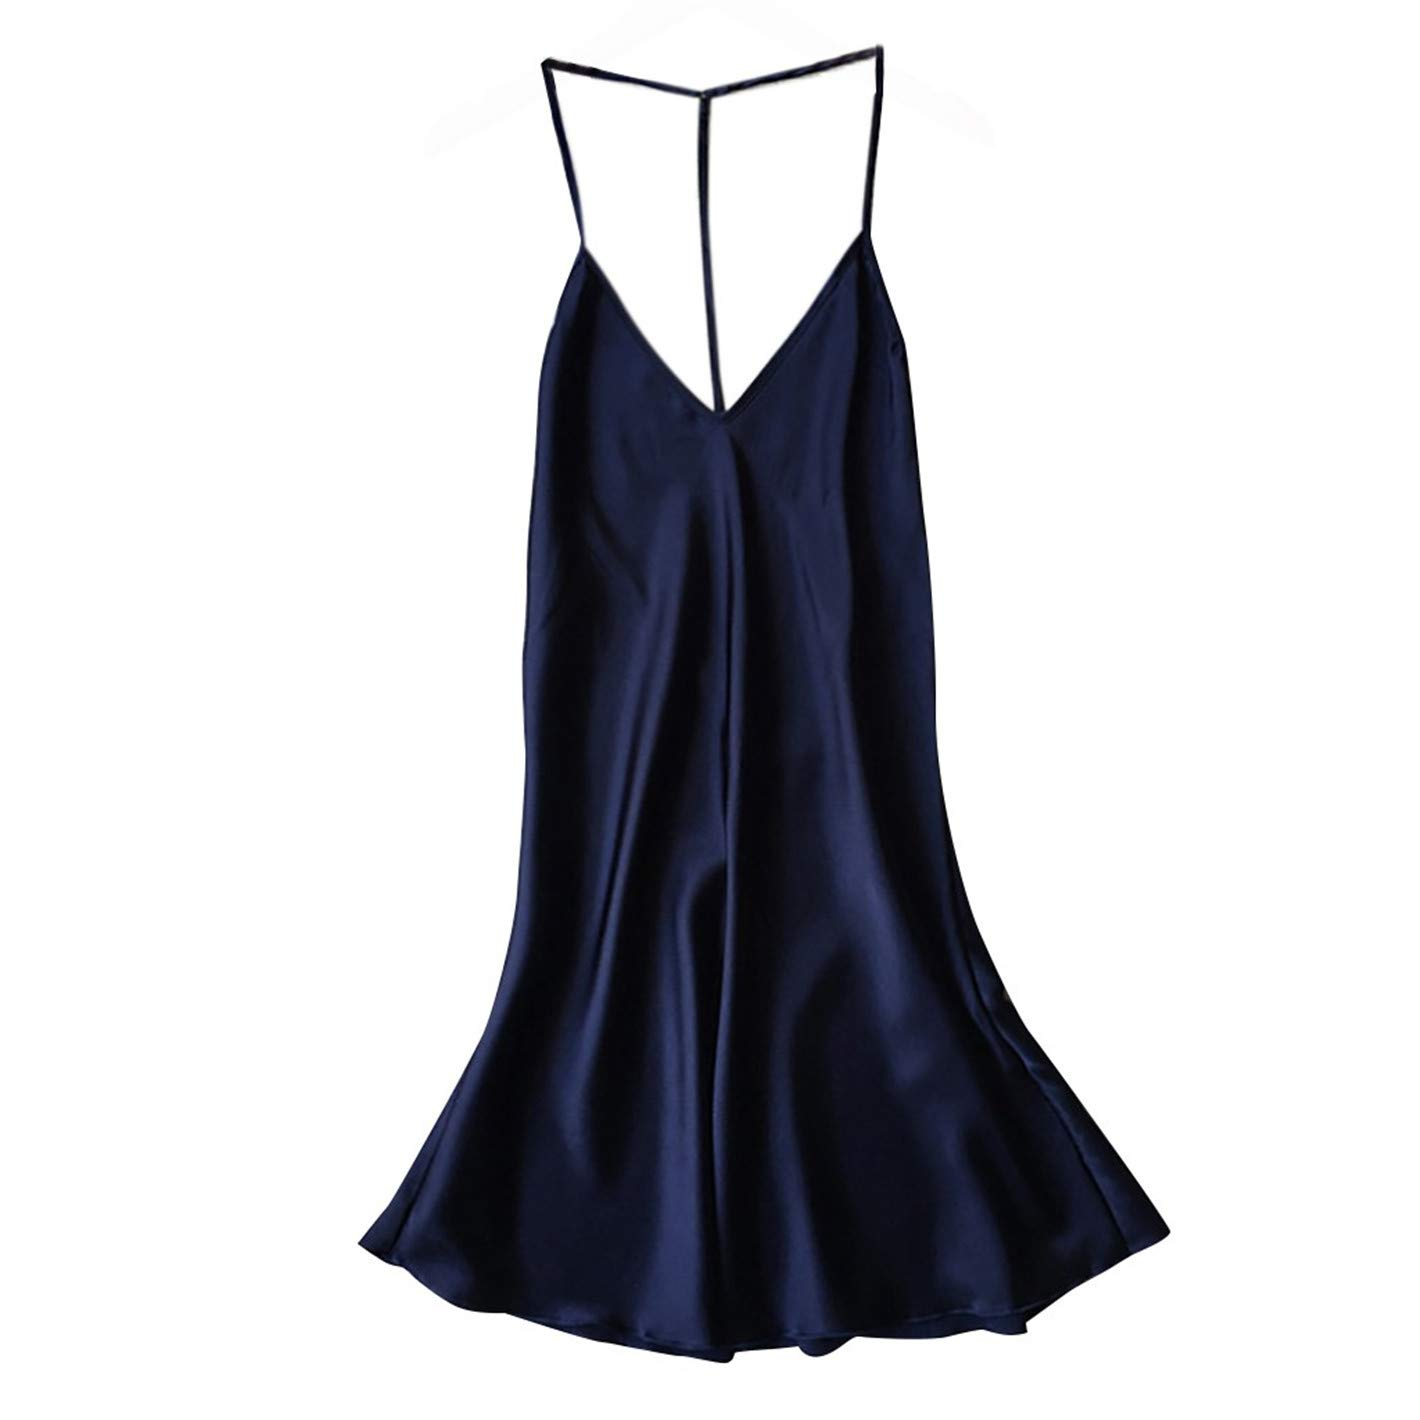 TIFENNY Women's Sexy Satin Sleepwear Appeal Babydoll Lingerie Backless Nightdress Pajamas Vest Sling Blue